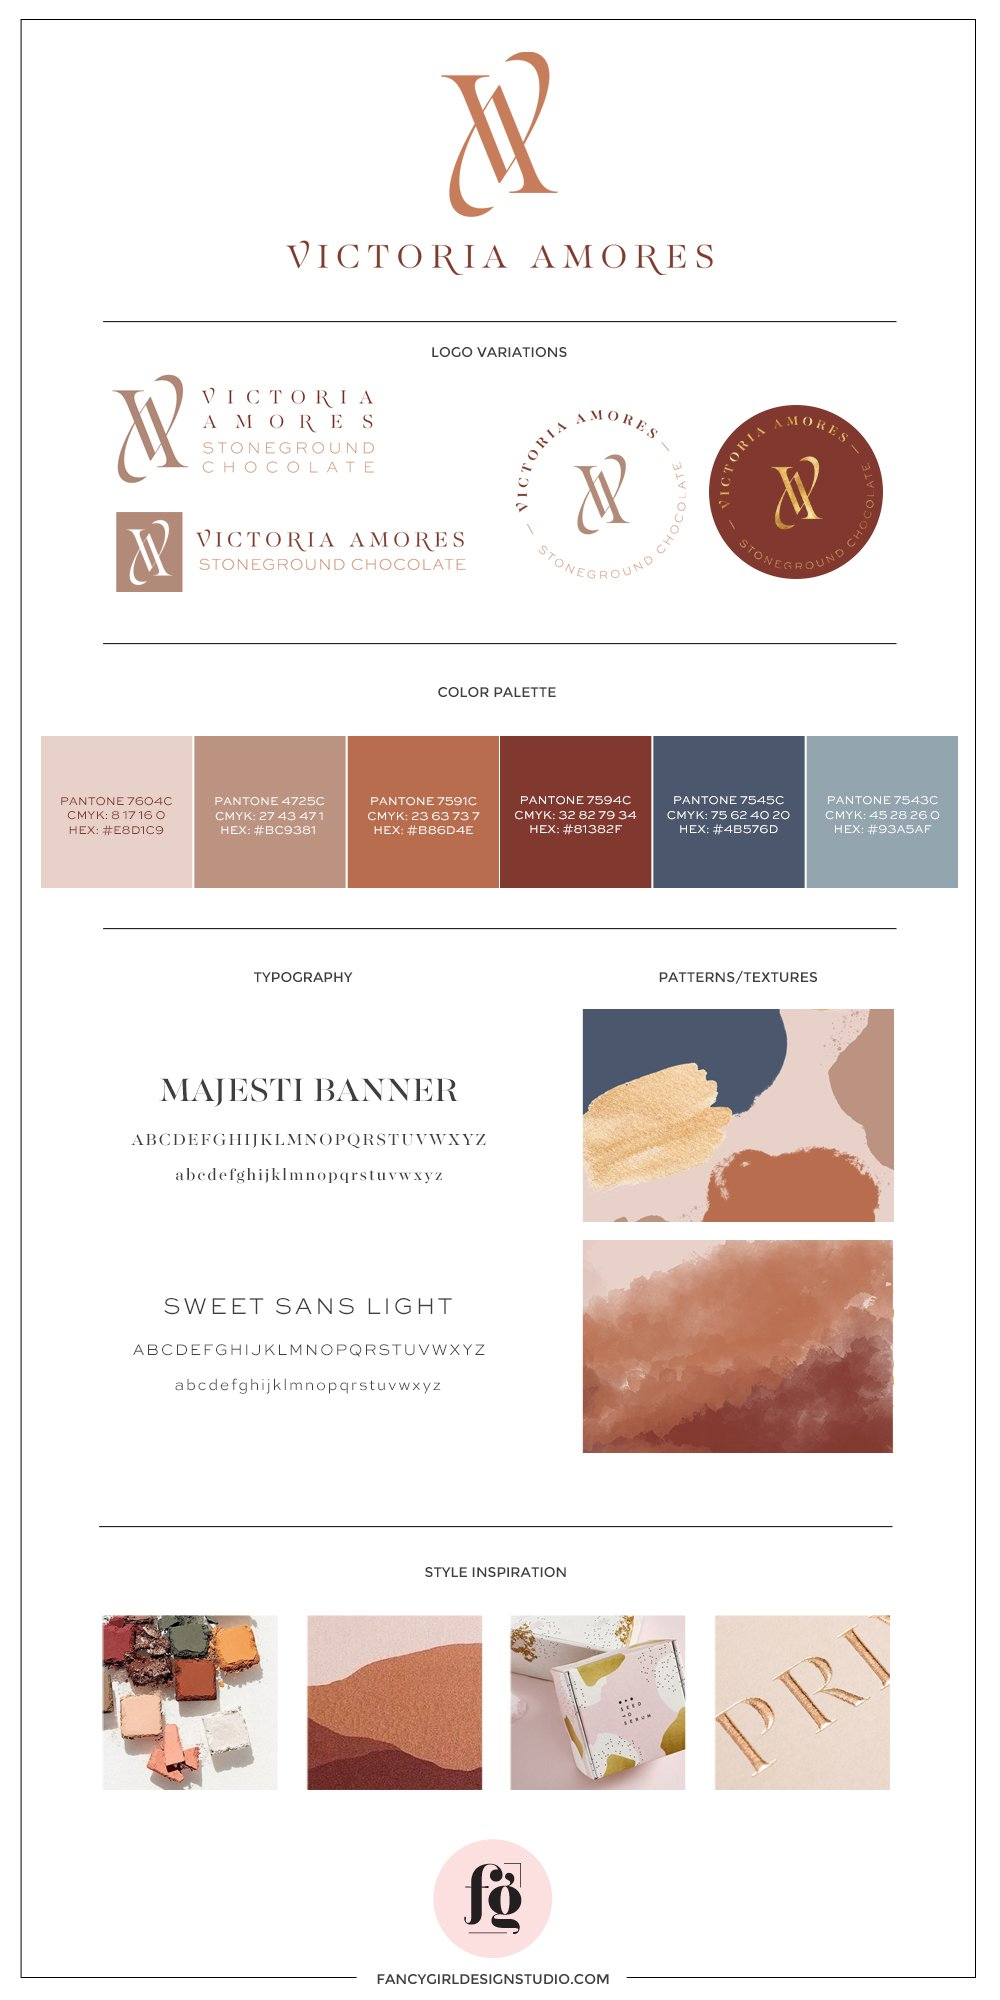 brand guide for Victoria Amores Stoneground Chocolate